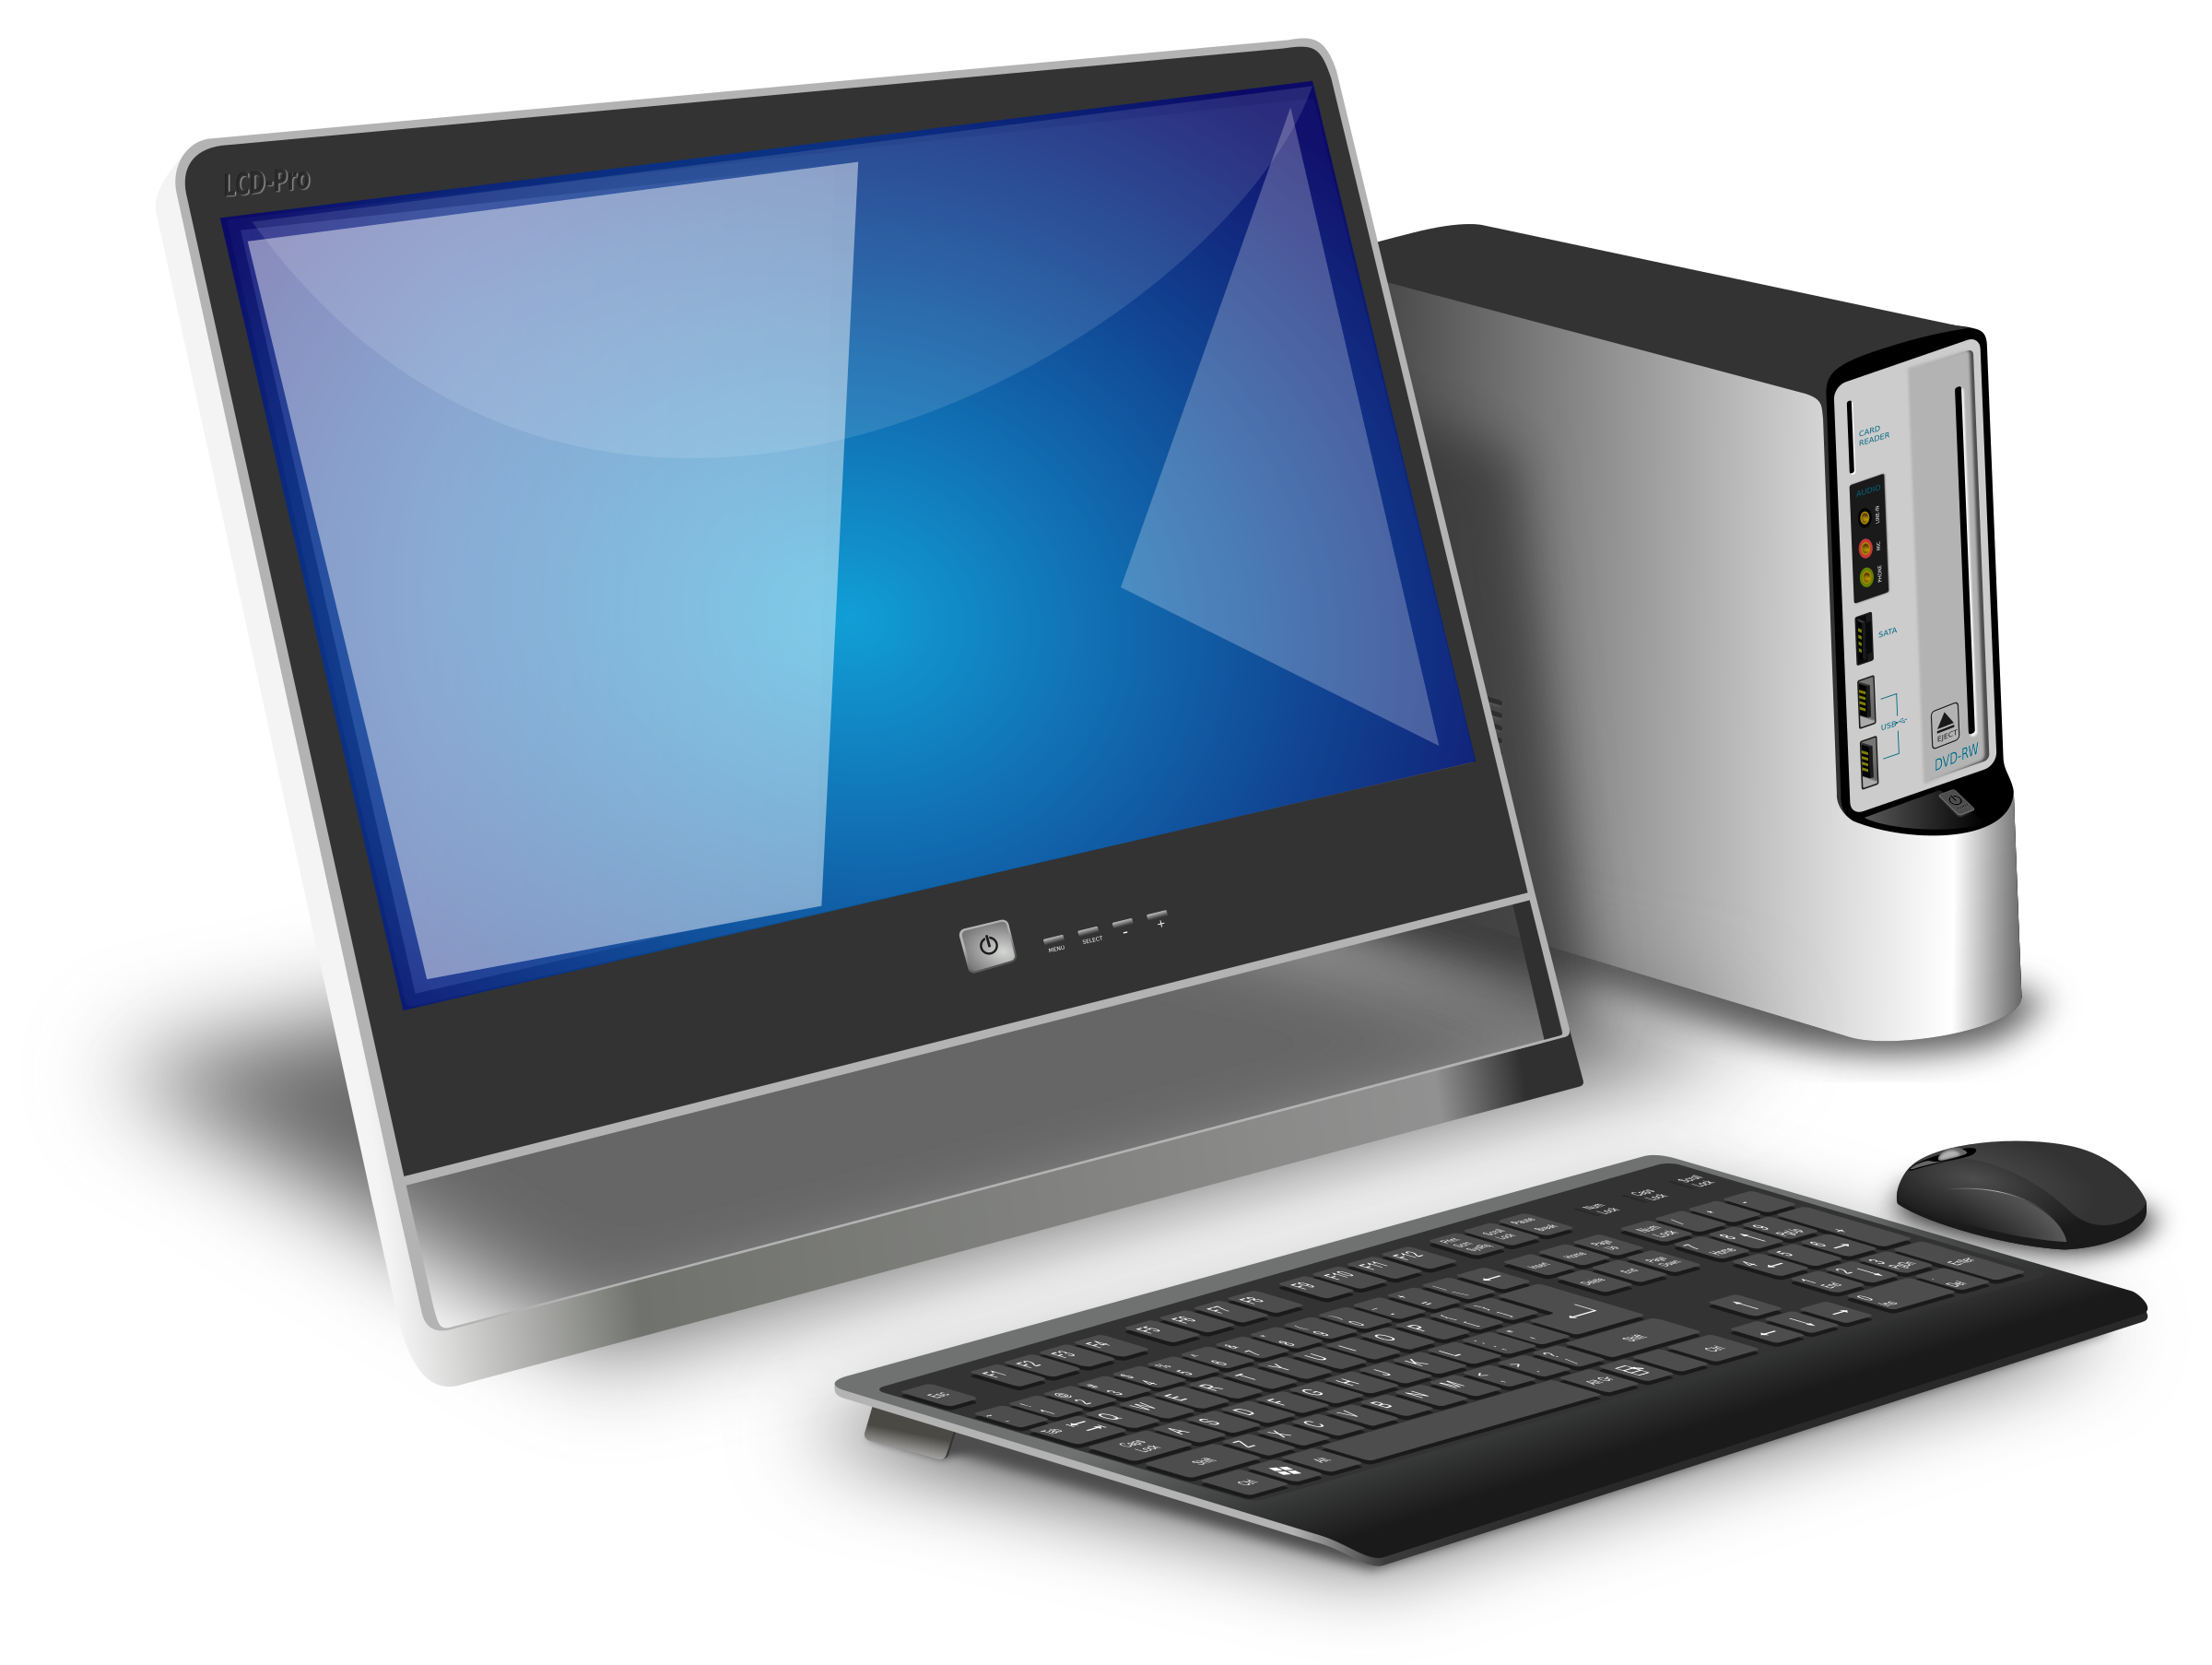 Generic office desktop by spylt